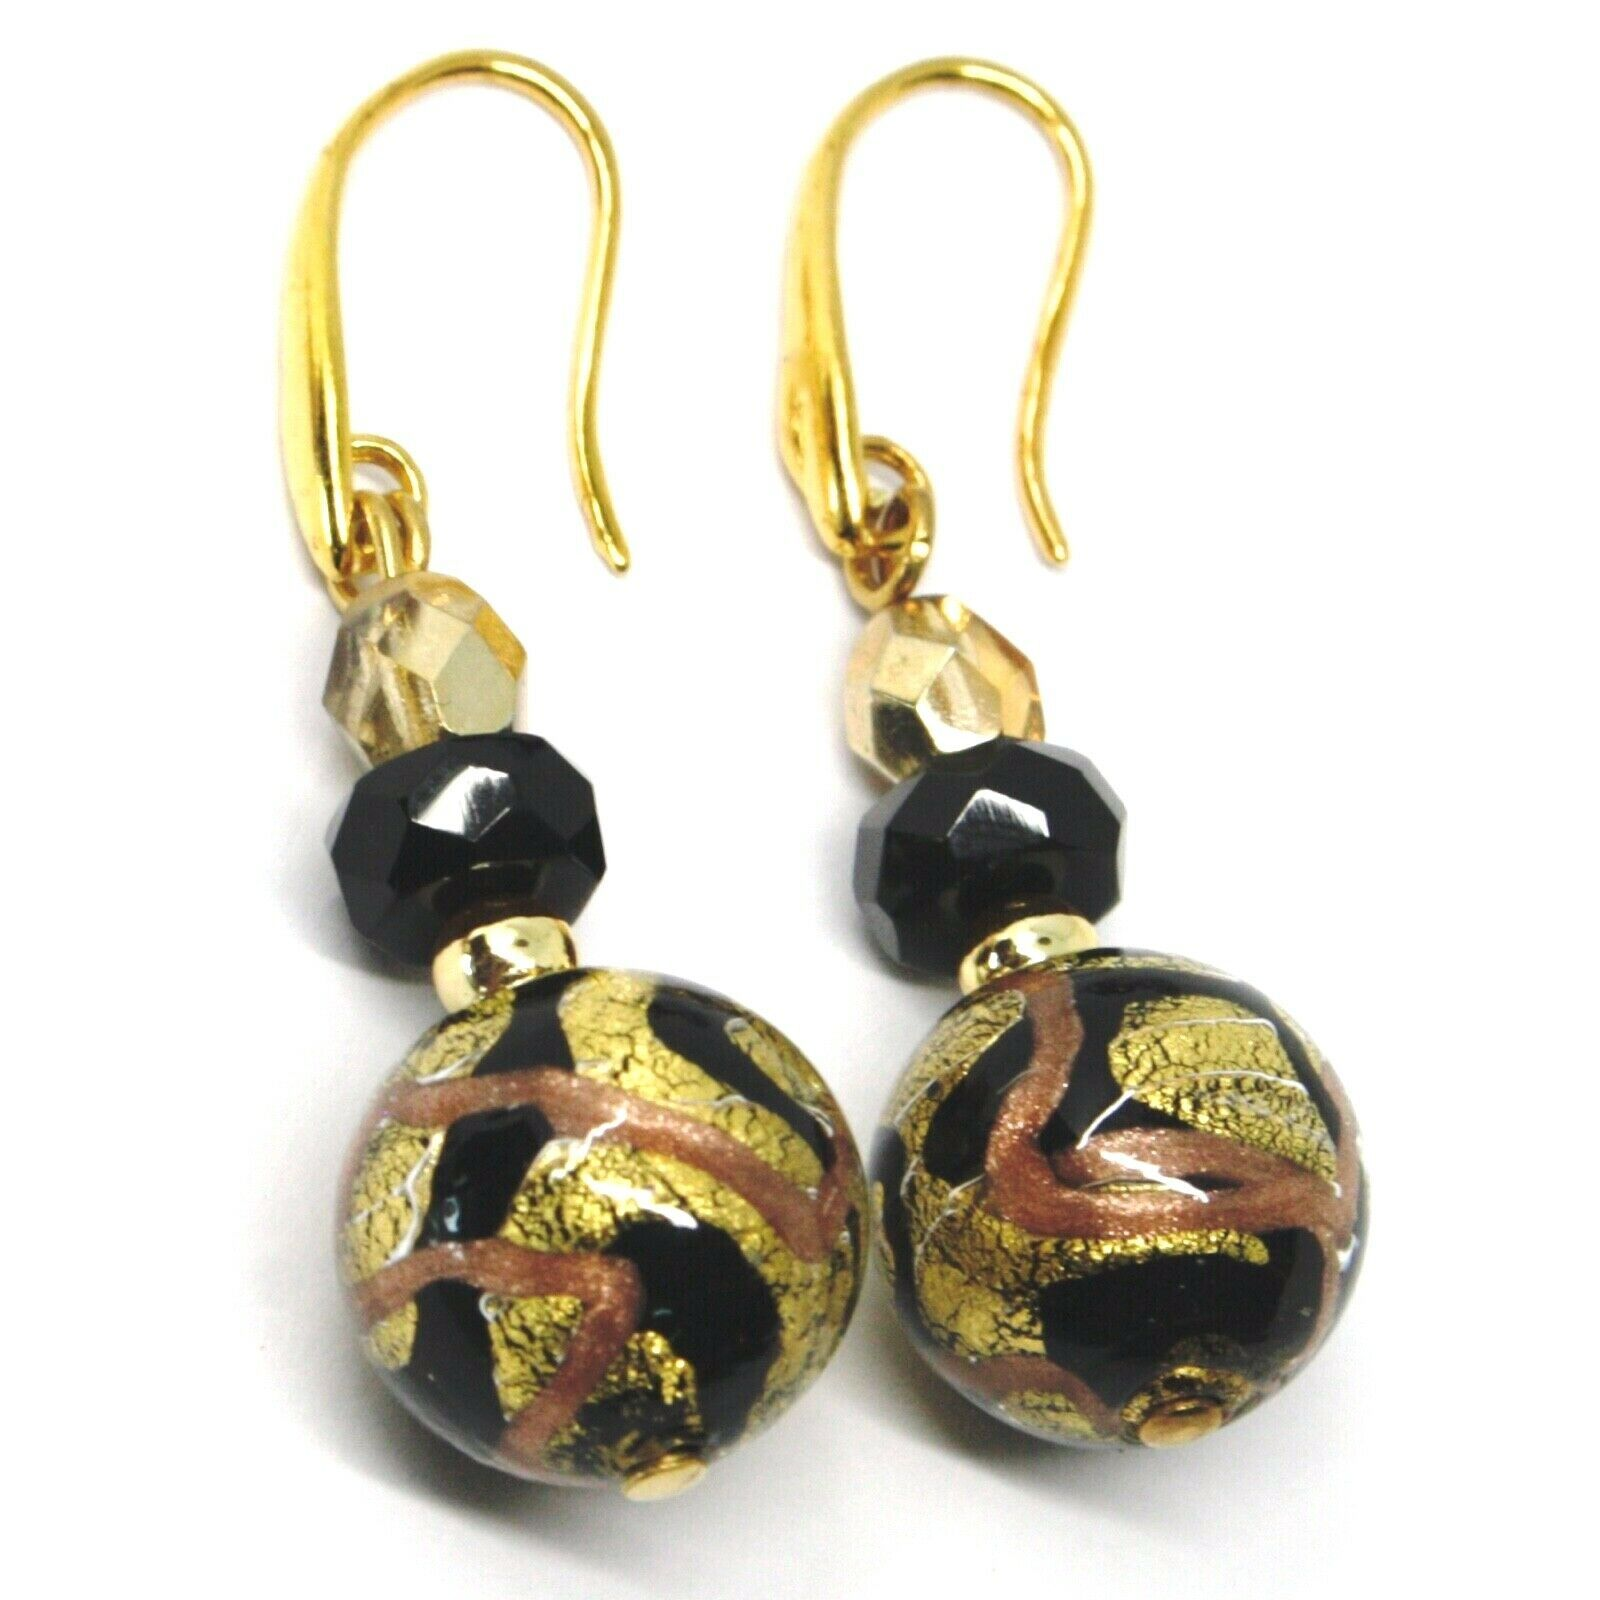 PENDANT EARRINGS BLACK STRIPED MURANO GLASS SPHERE & GOLD LEAF, MADE IN ITALY